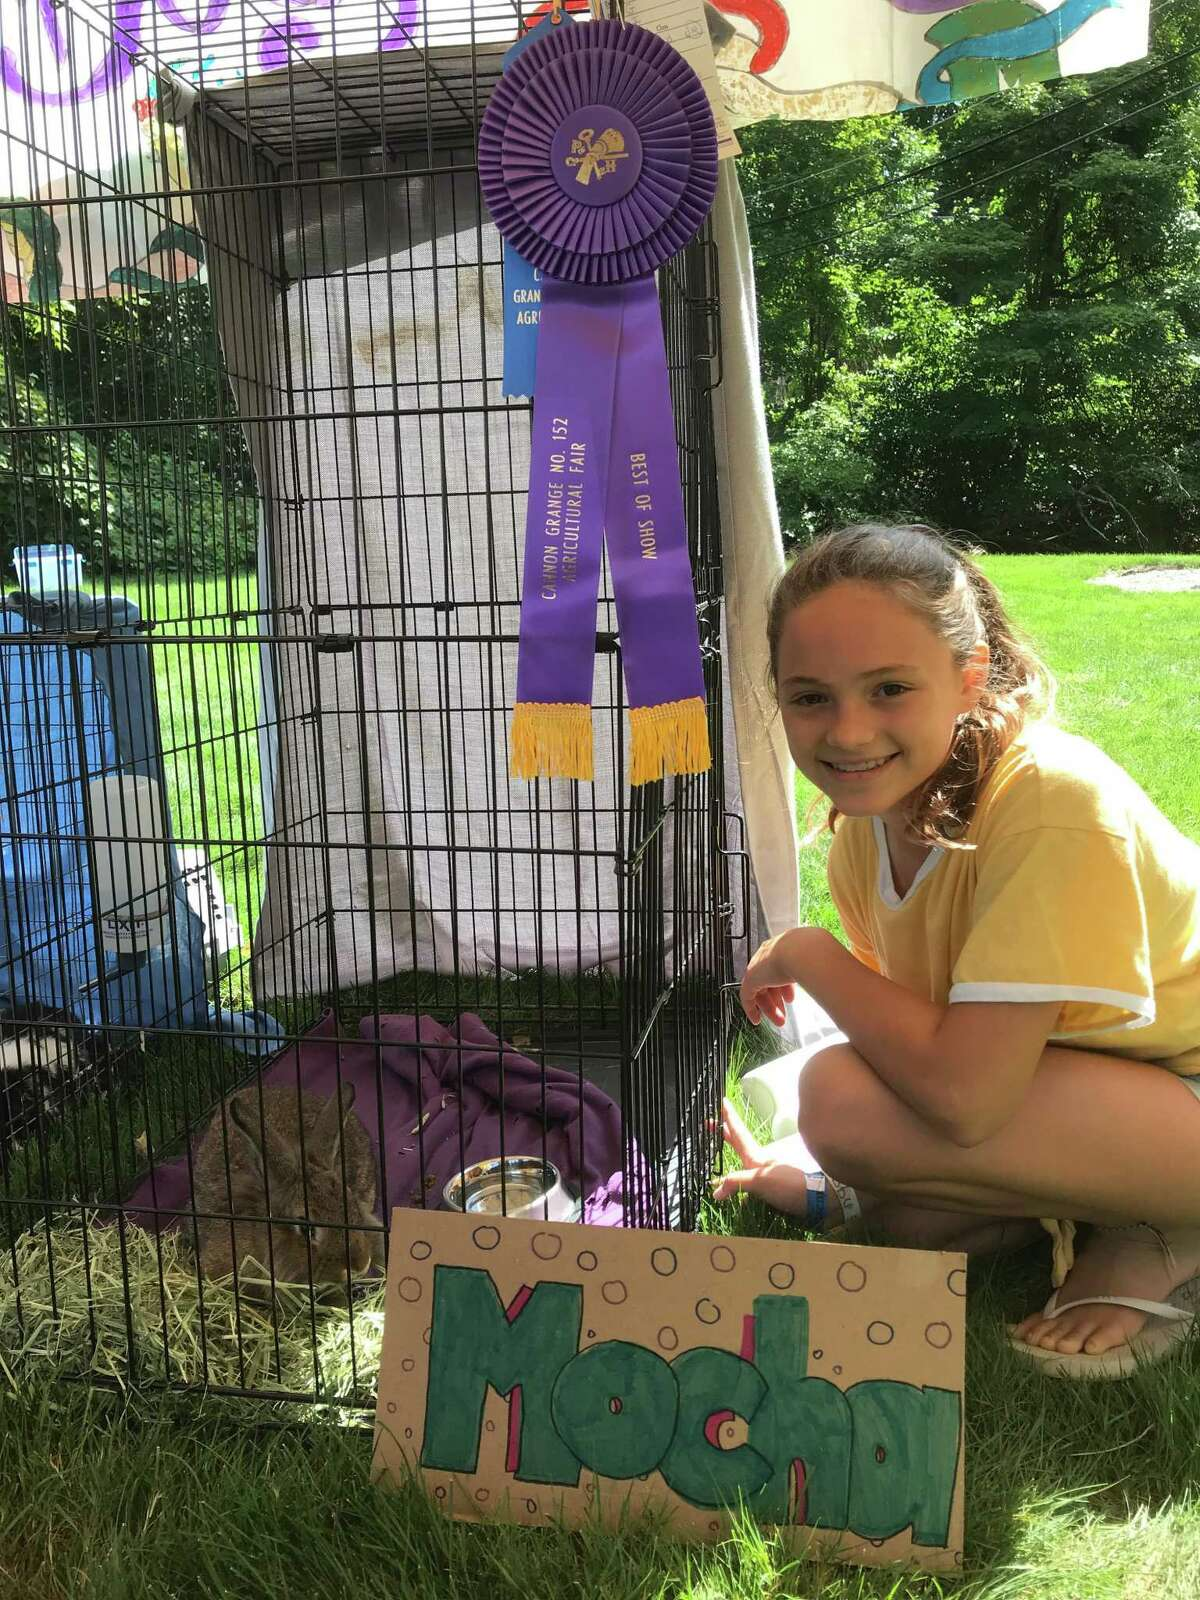 """Abby Jones, 12, of Wilton, was proud to see her bunny, Mocha, win a """"Best in Show"""" ribbon at the Cannon Grange's 87th annual agricultural fair and exposition on Sunday, Aug. 25."""